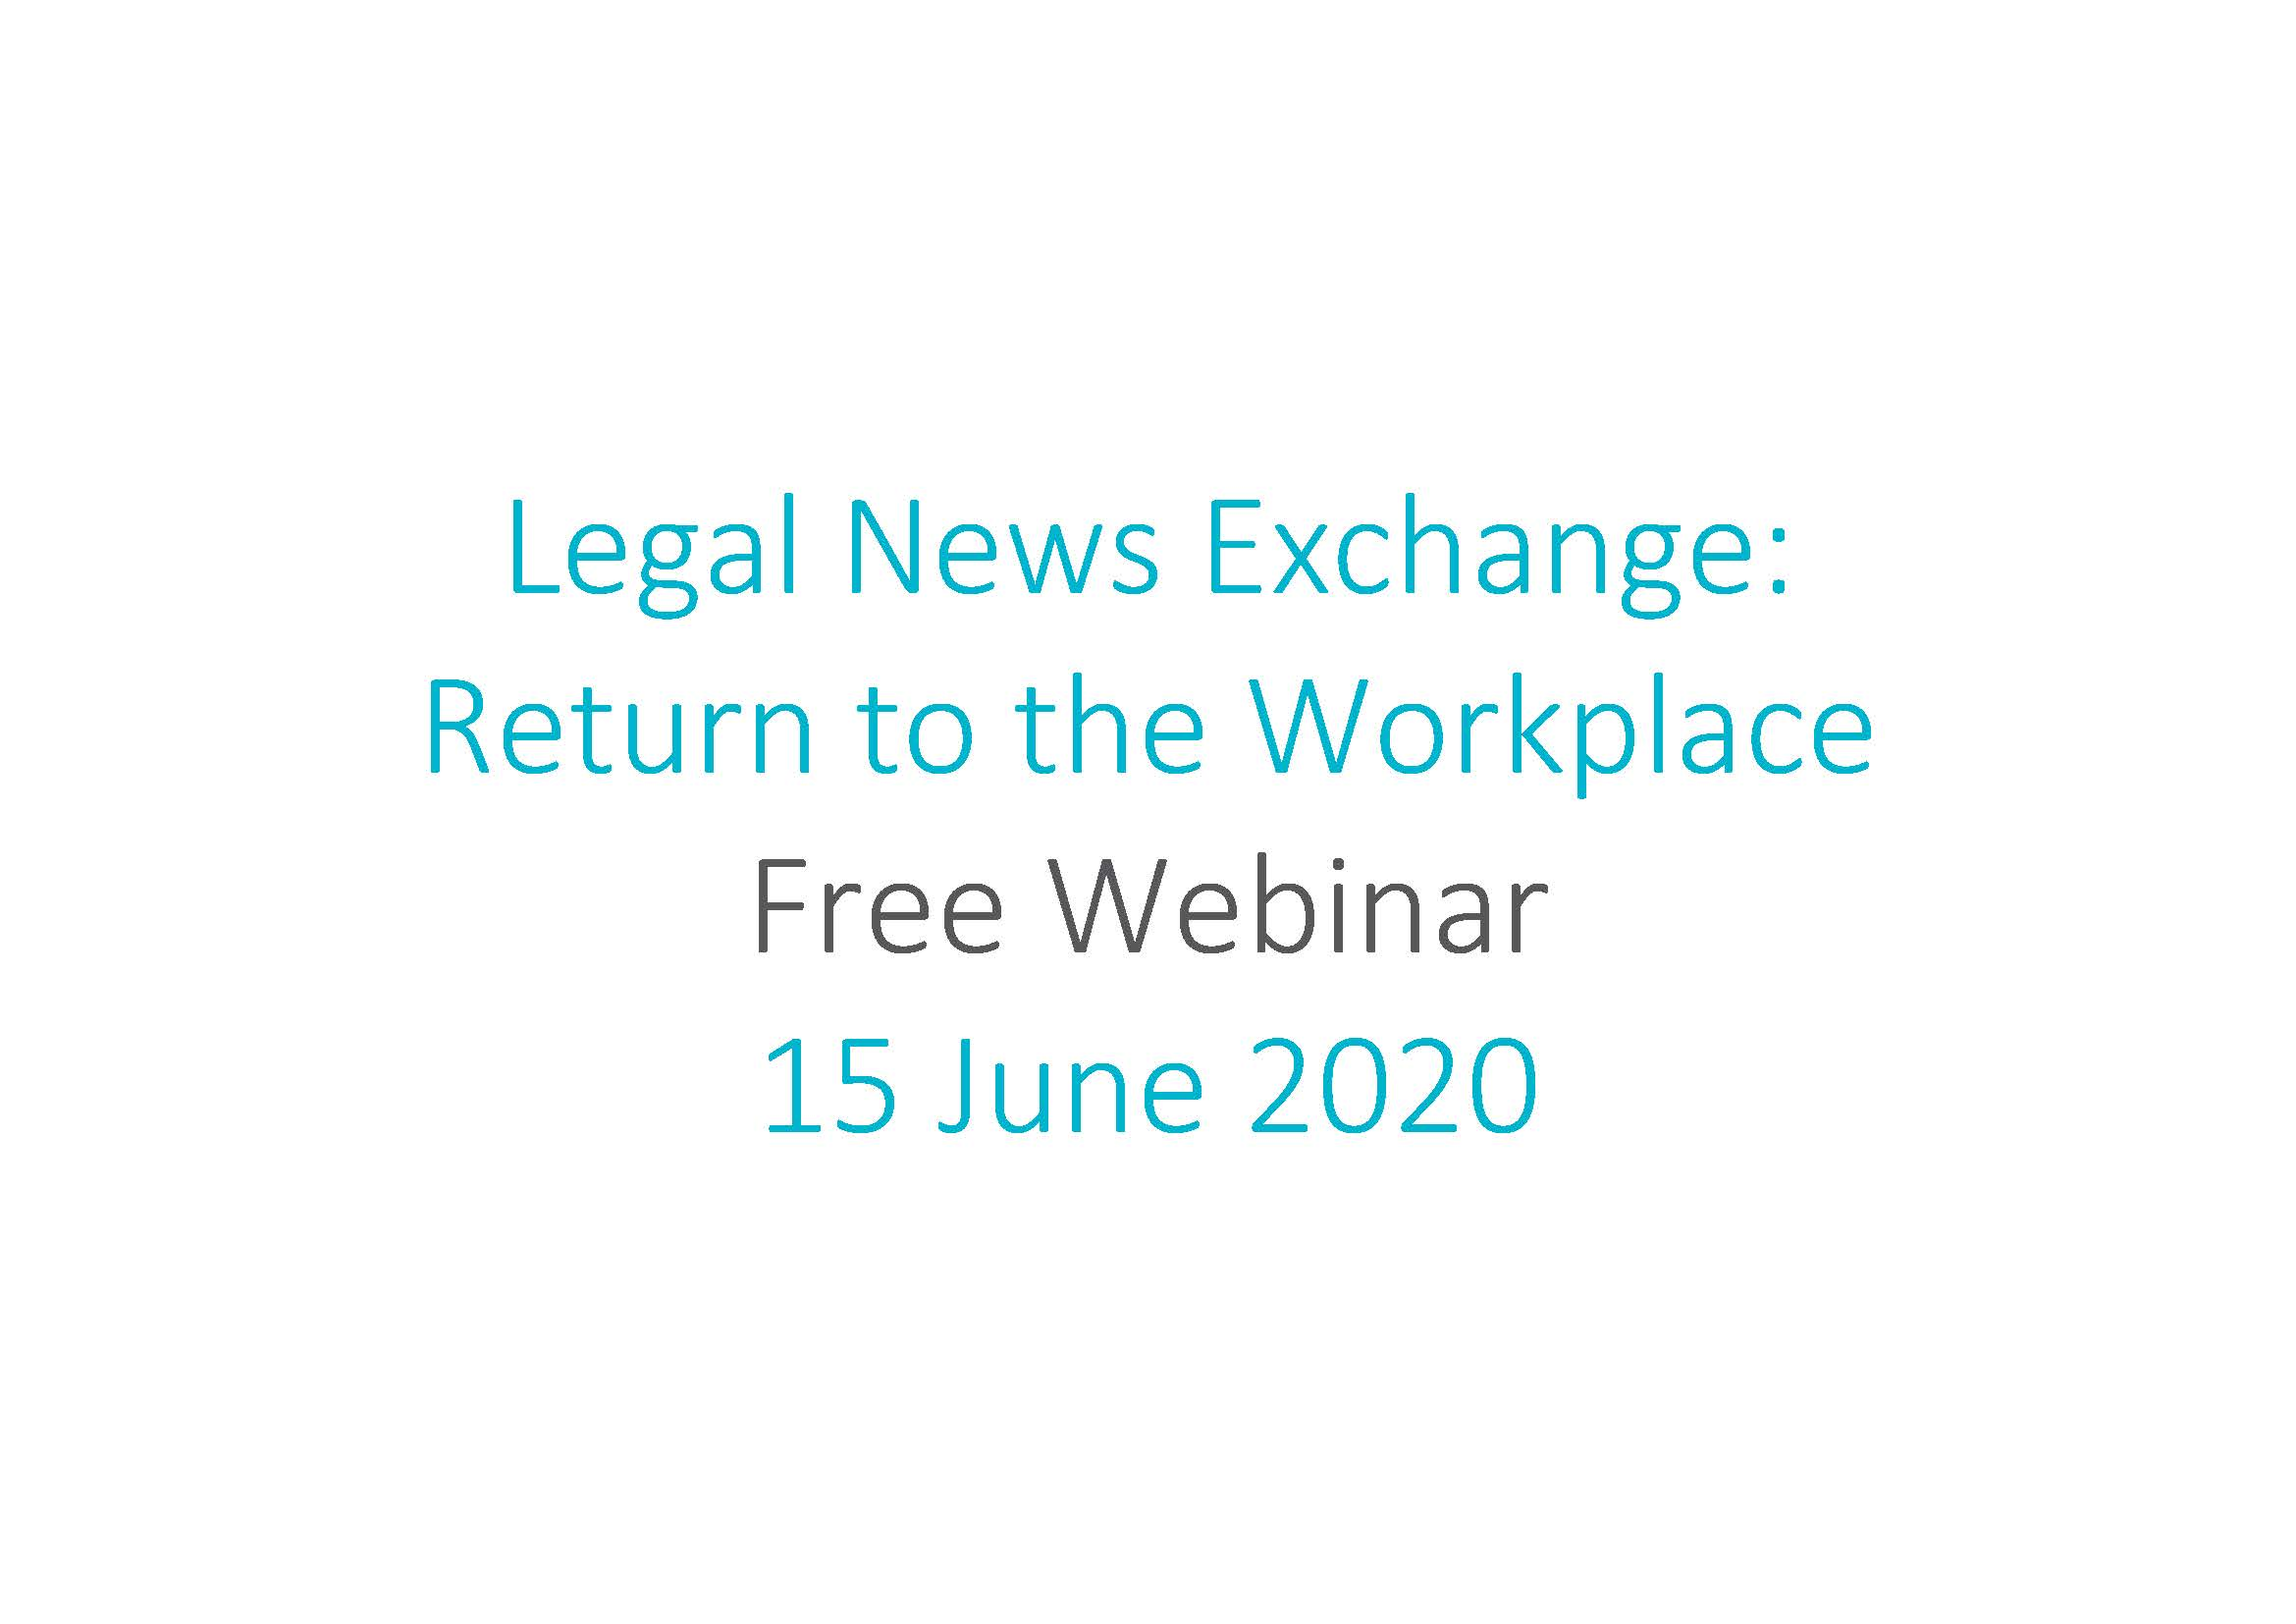 Legal News Exchange Return to the Workplace Webinar